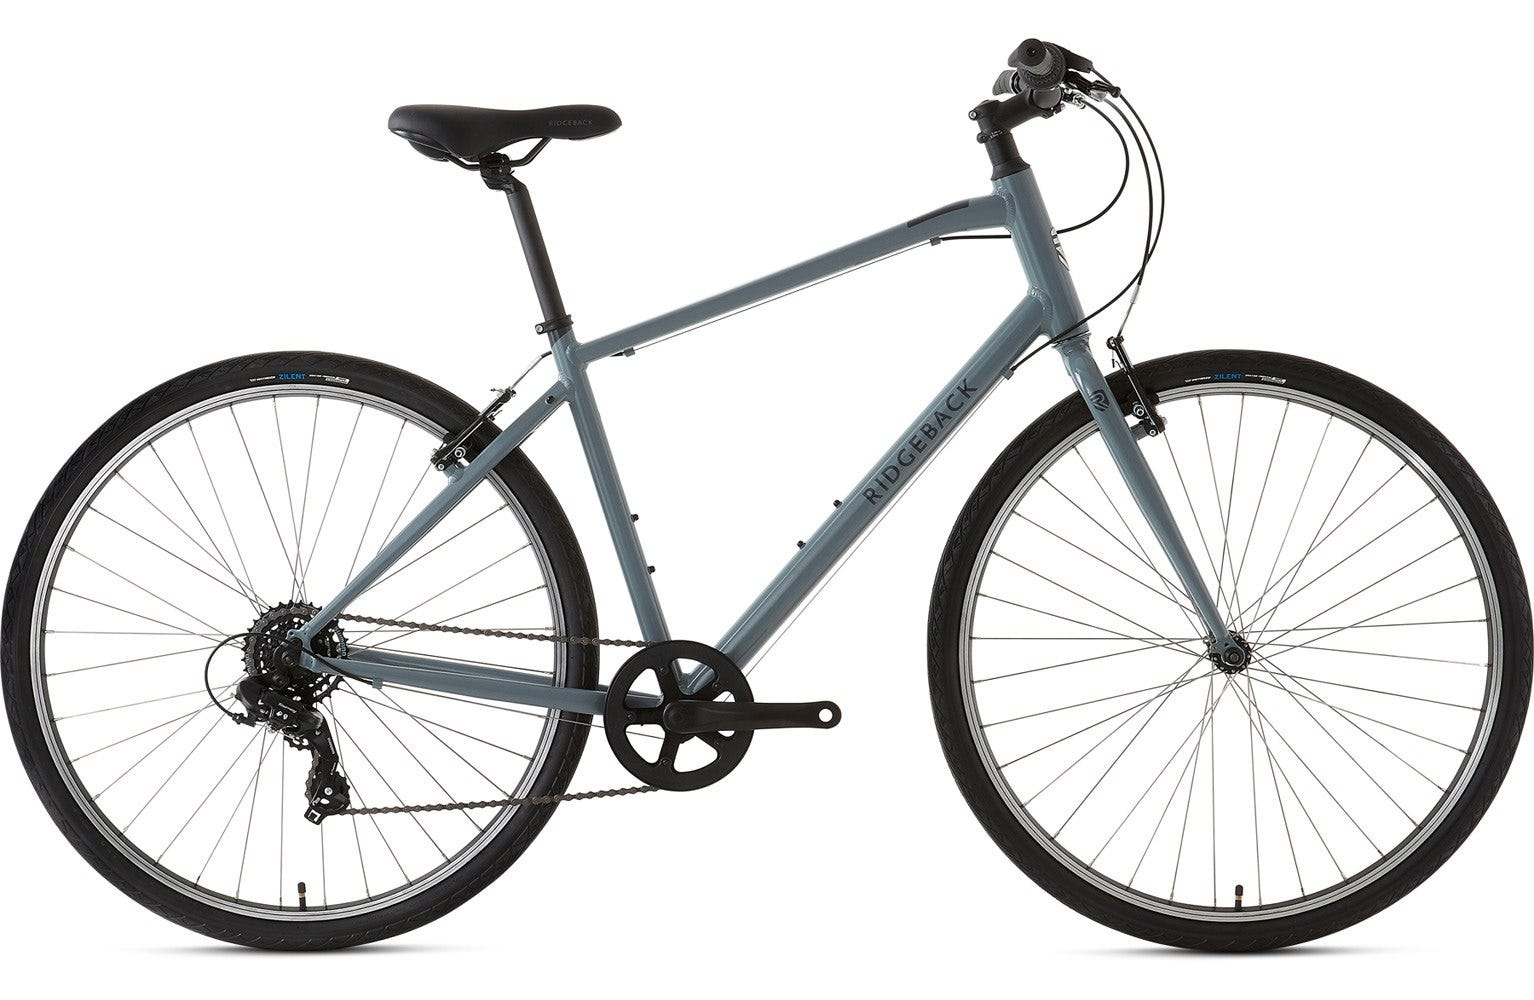 Ridgeback 2020 Comet 19 inch bike sample (unused)